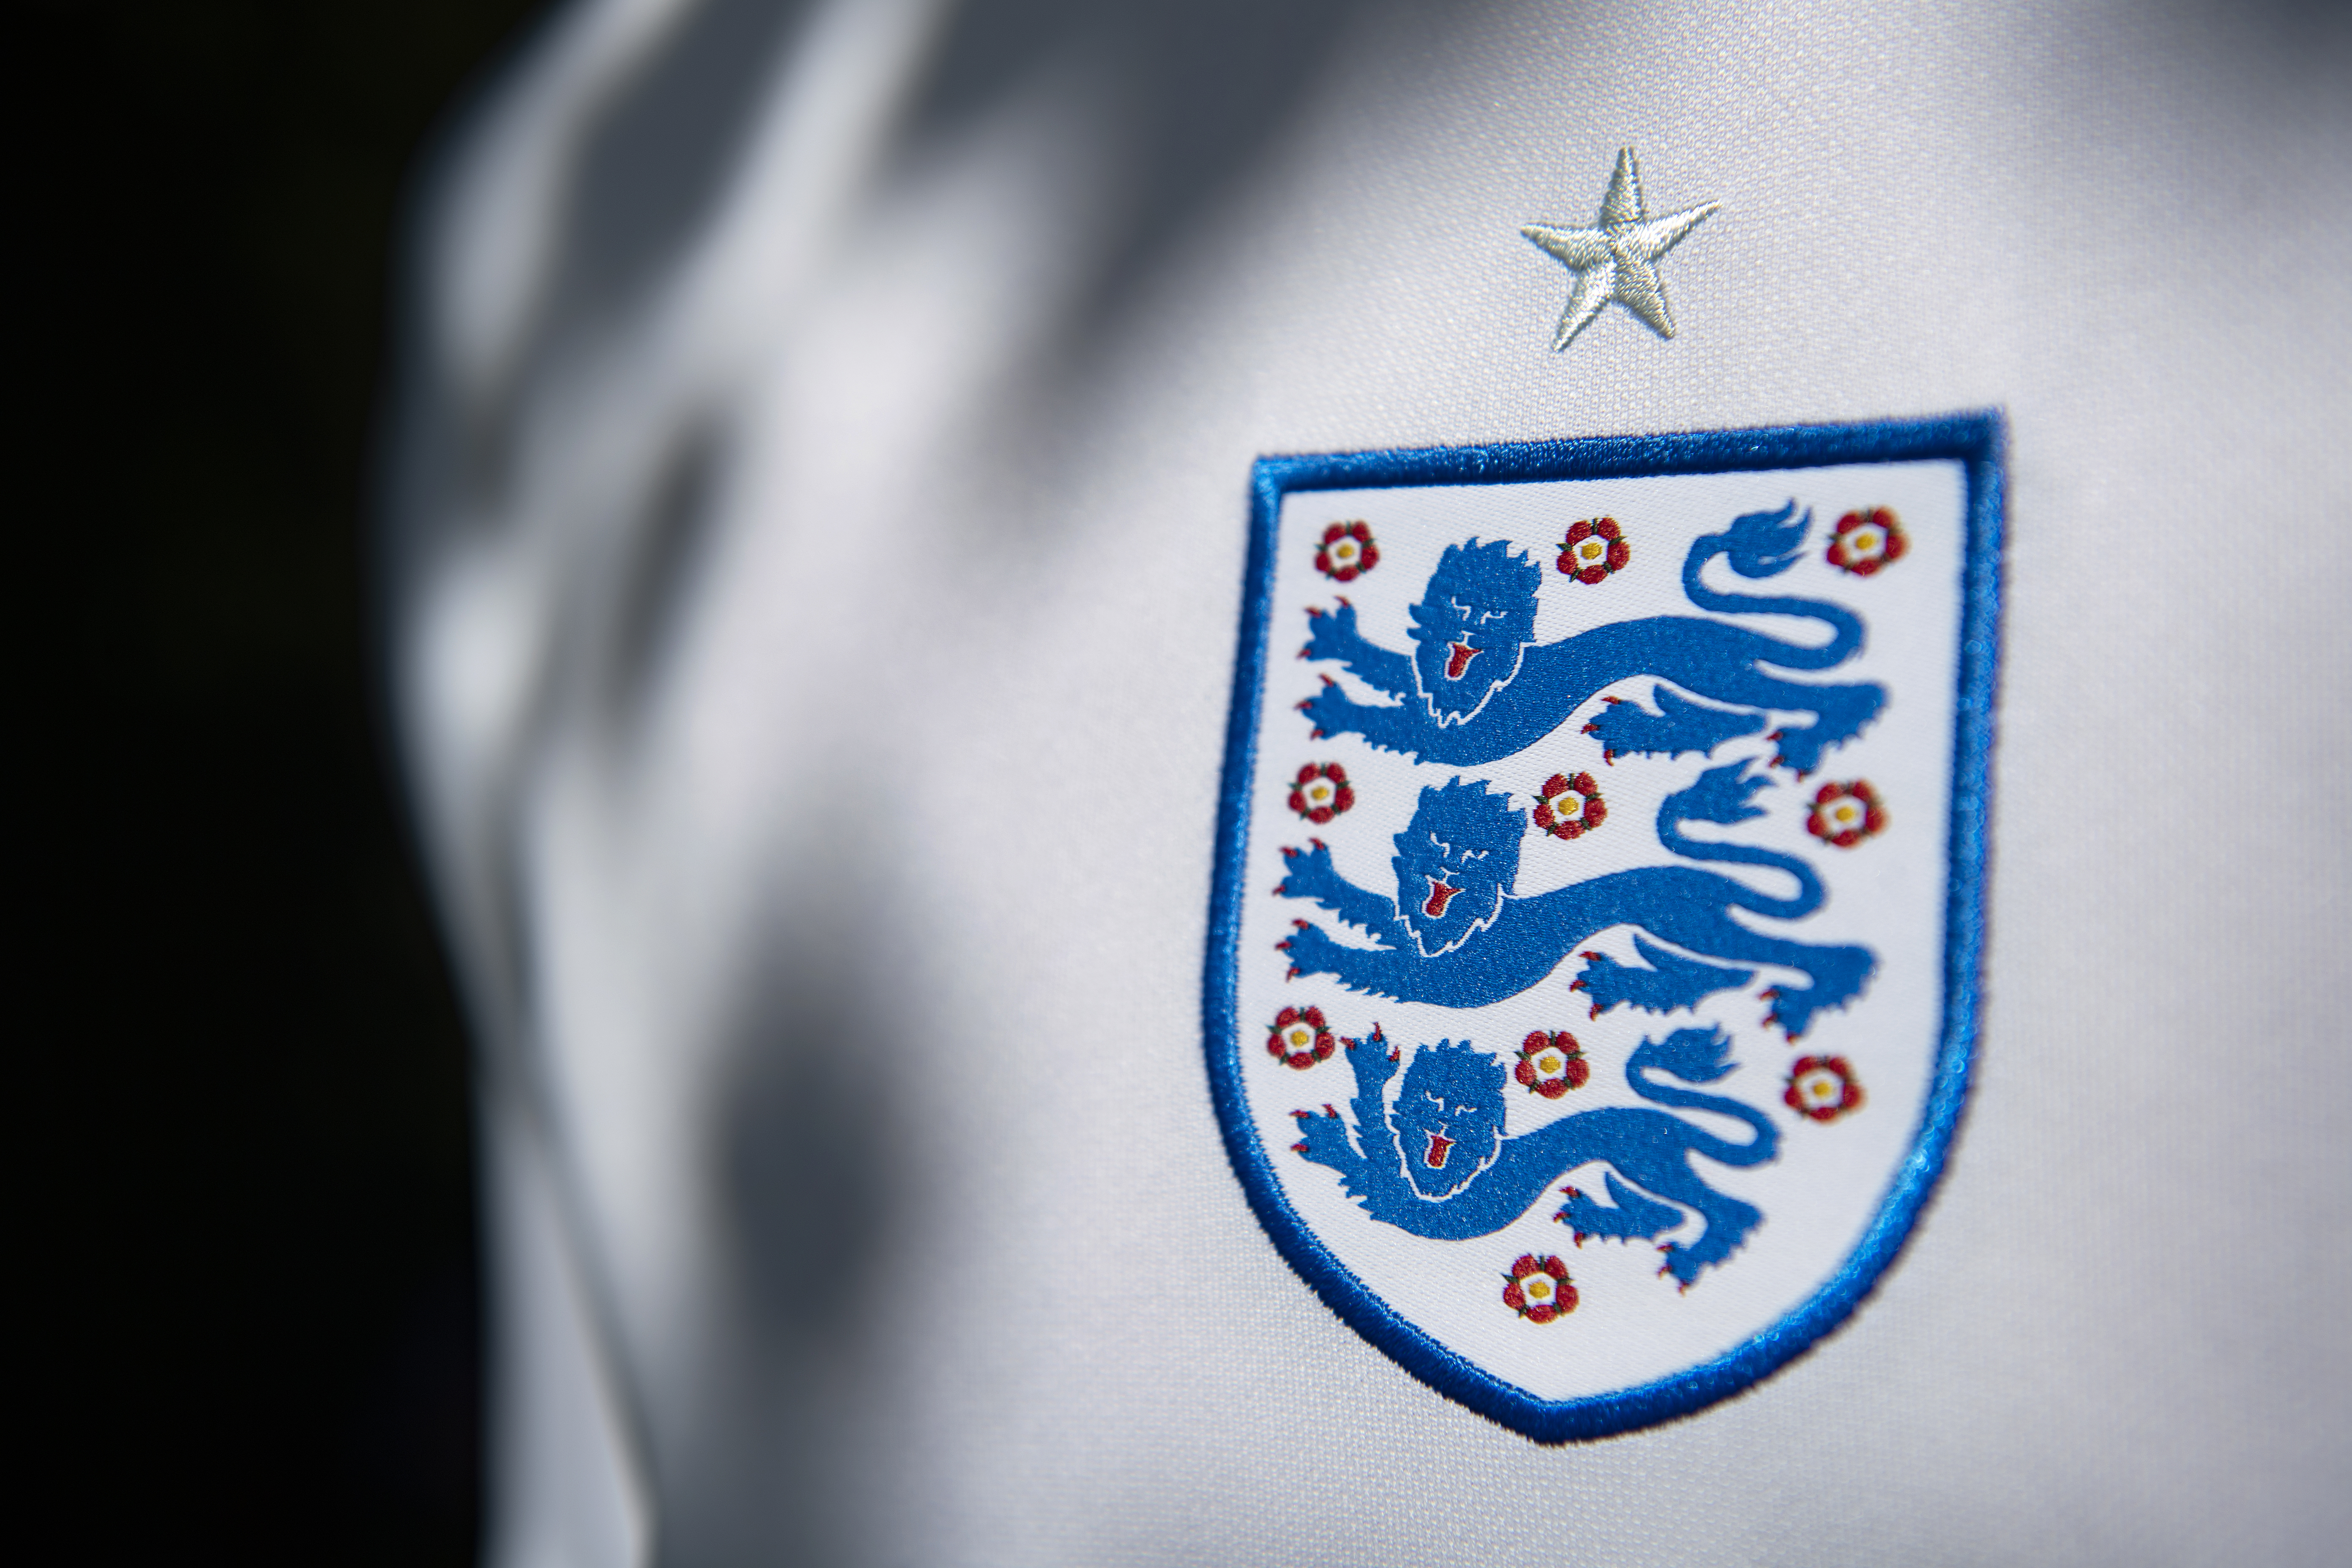 The England International Badge showing the three lions on their home shirt - Euro 2020